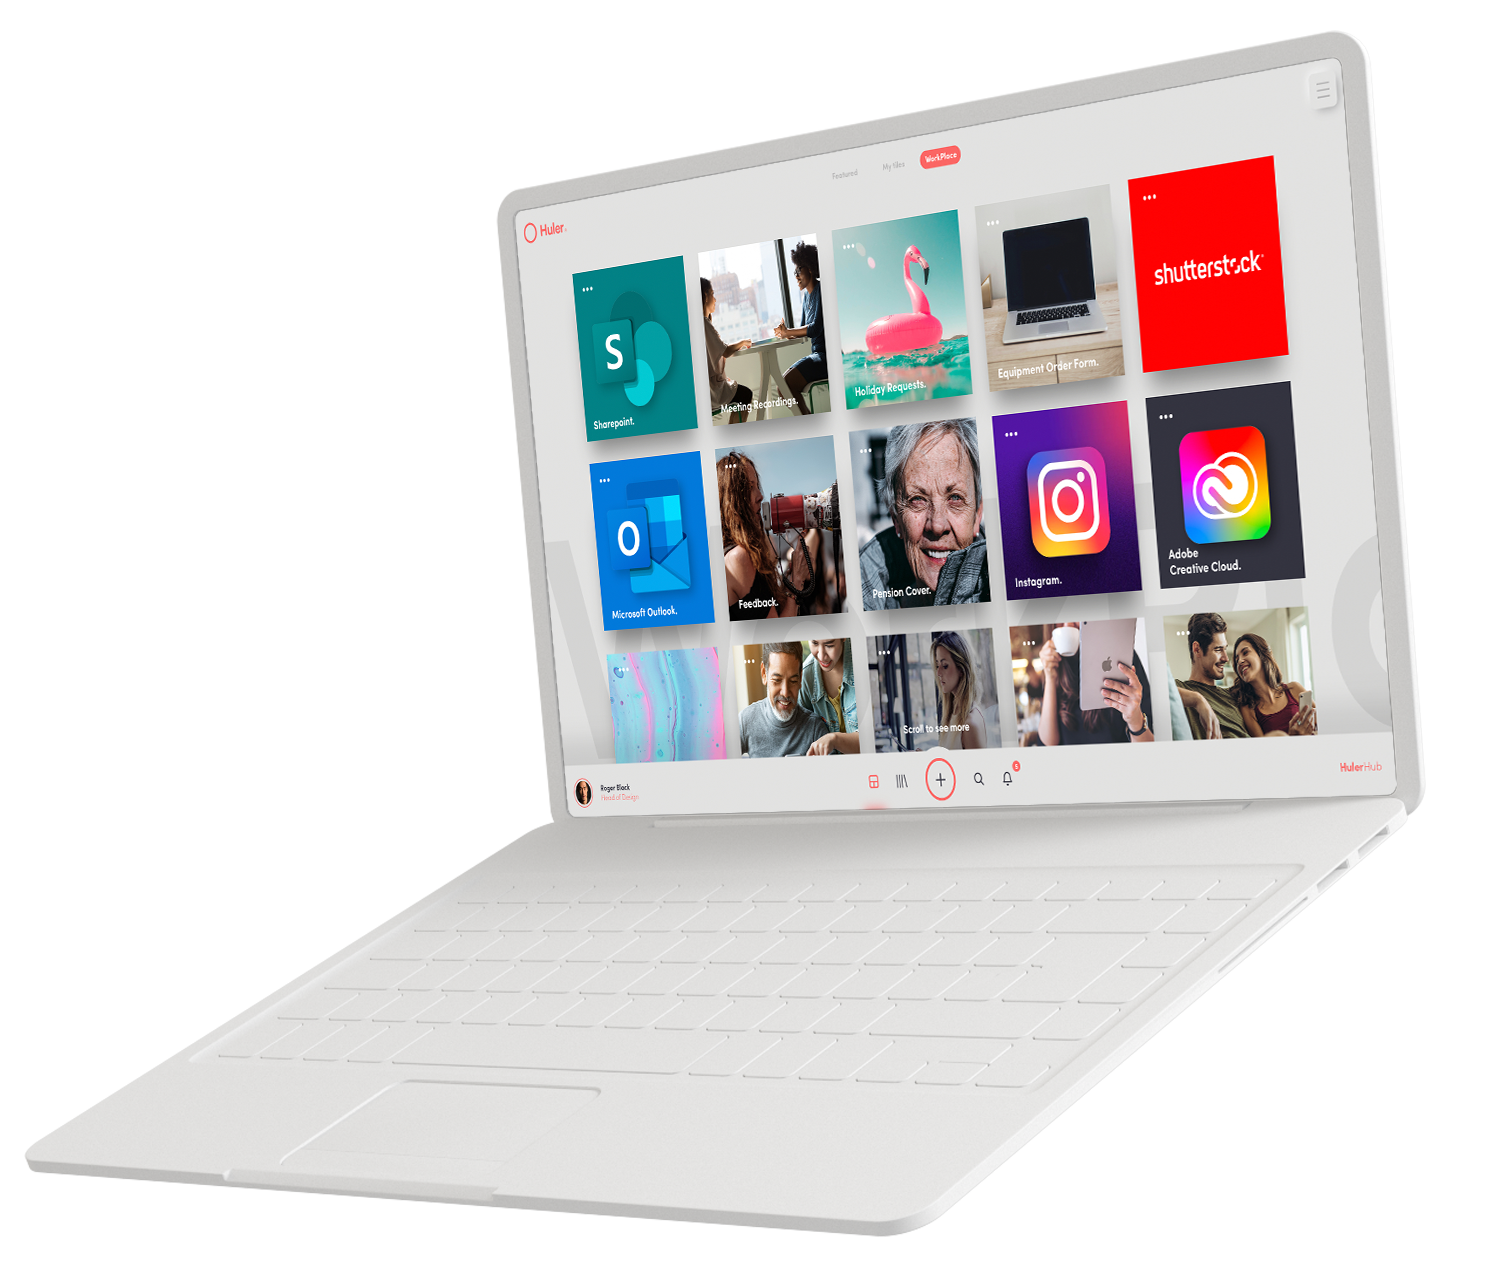 A graphic design of a white laptop. The display shows the HulerHub Workplace populated with a number of tiles including Sharepoint, Outlook, Instagram, and Shutterstock.